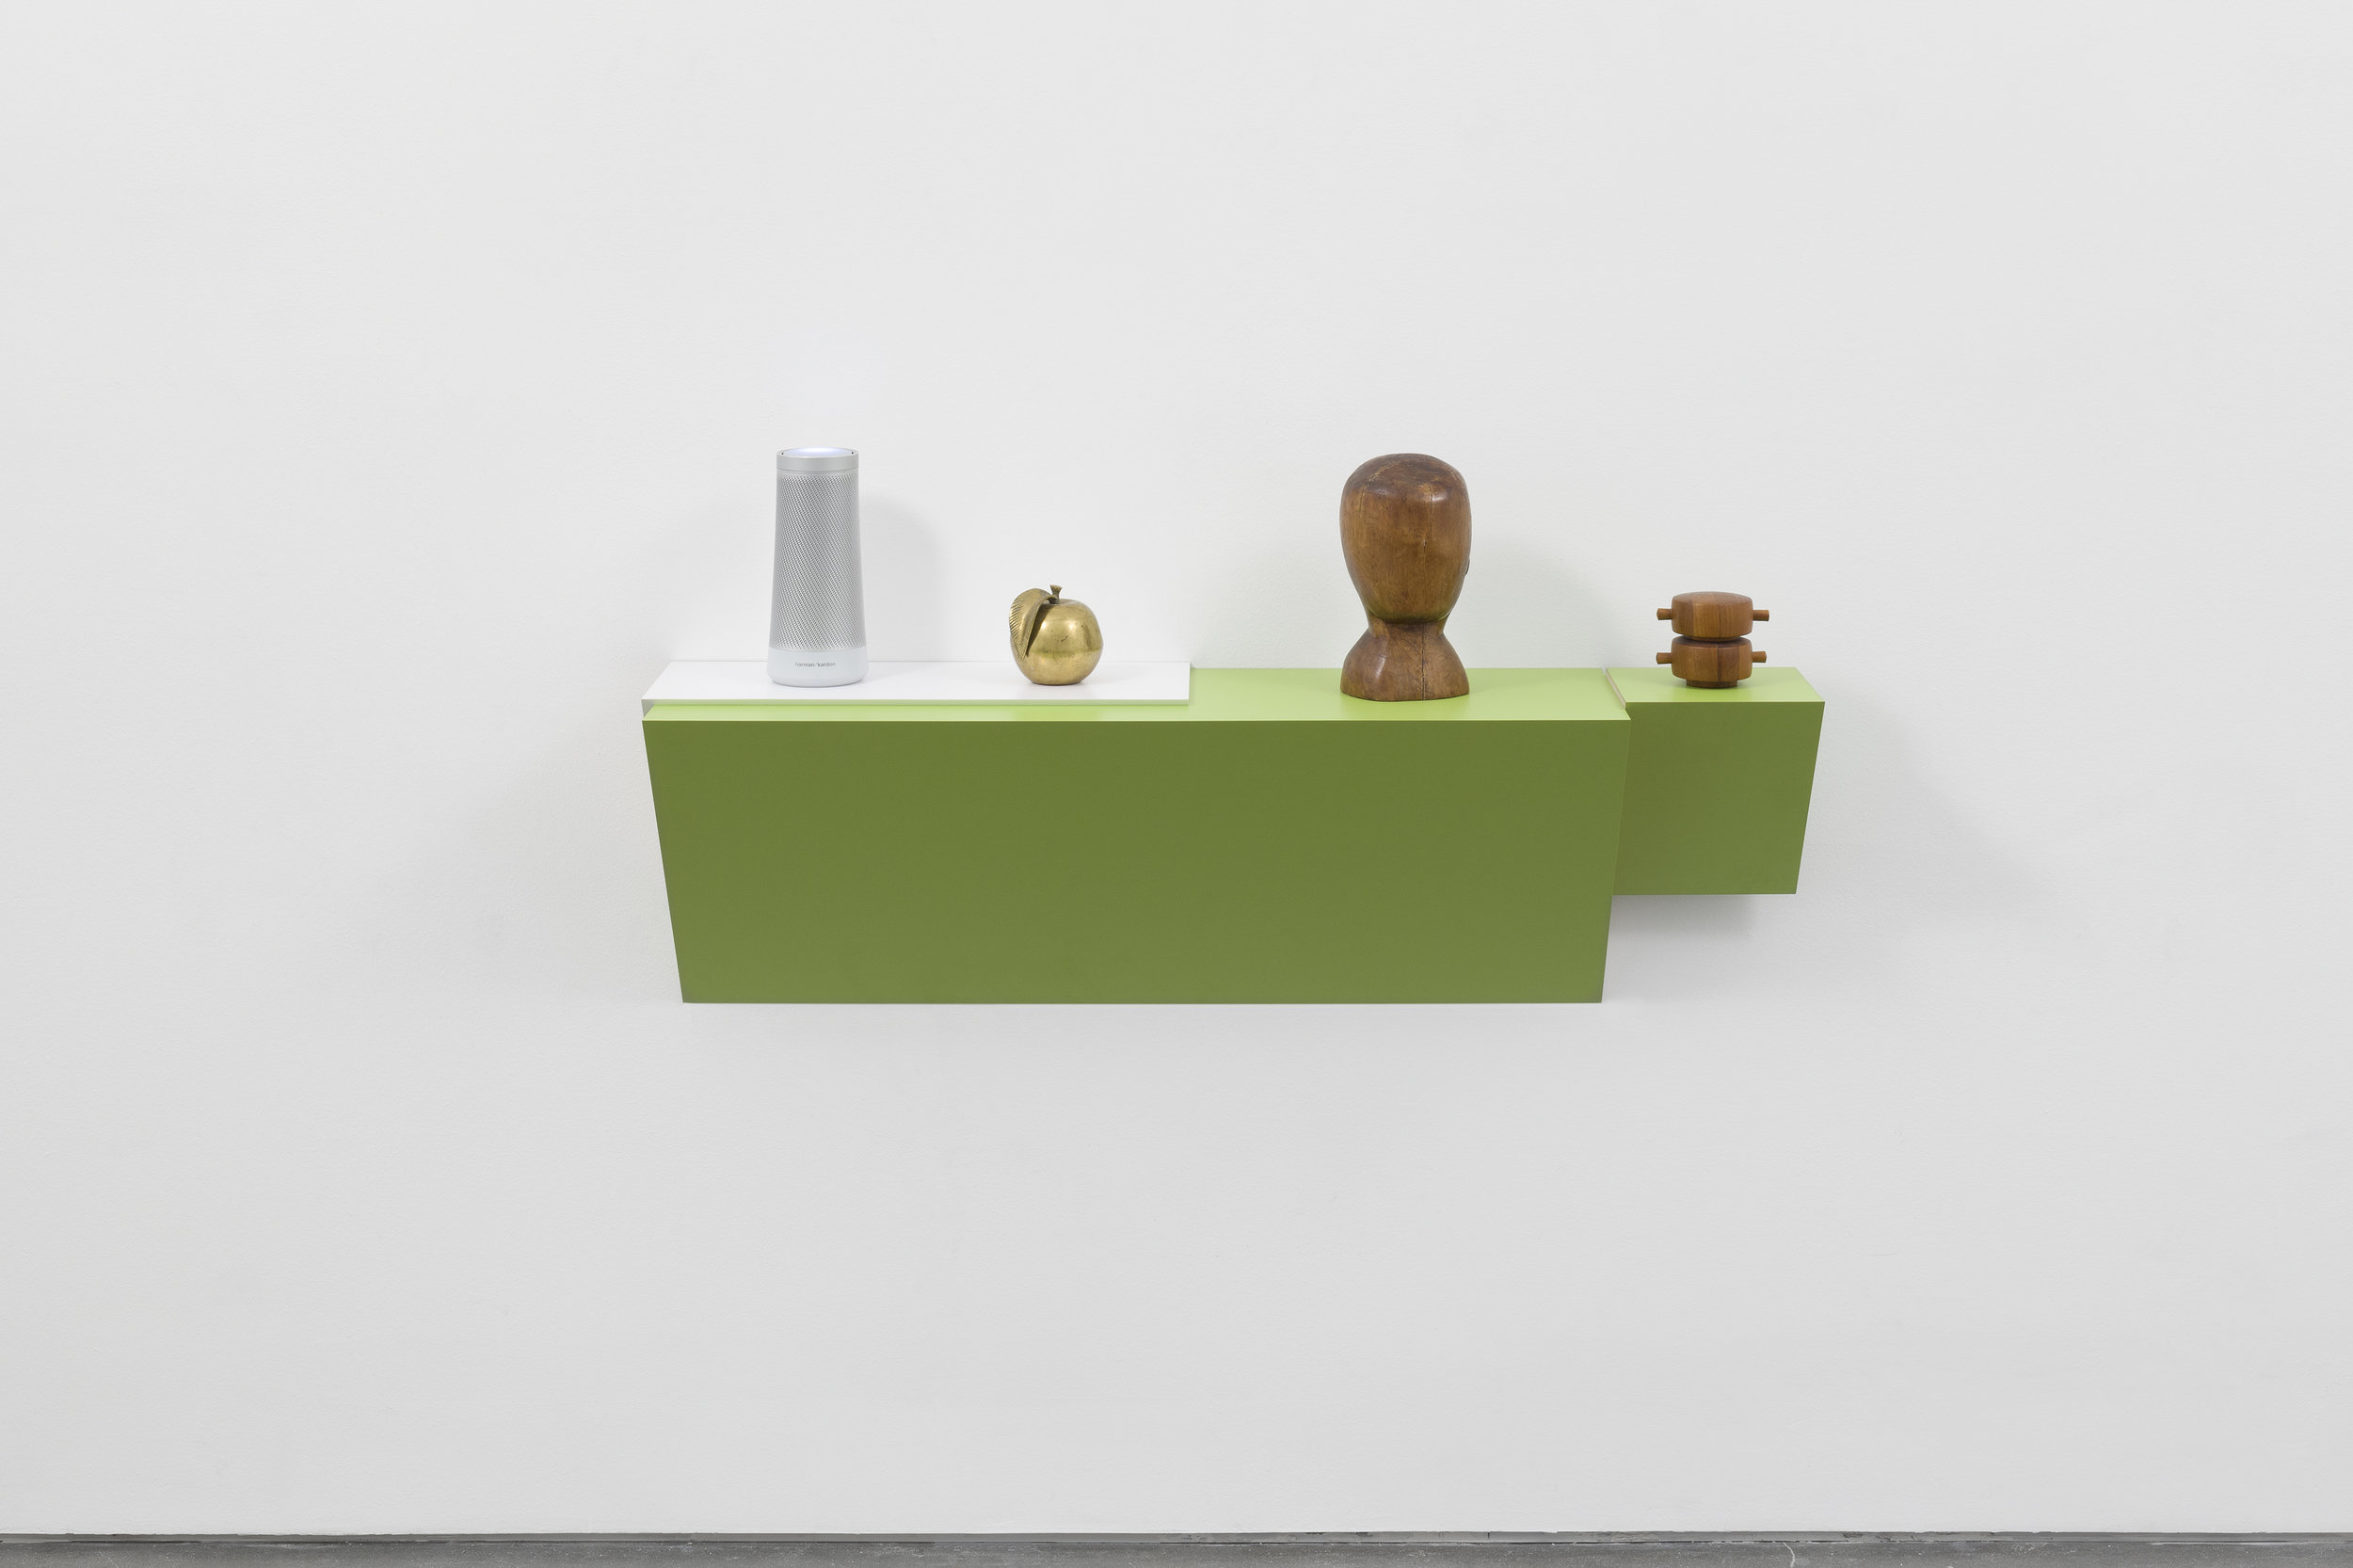 the nutcracker , 2018, lastic laminated wood shelf, electronic smart speaker, brass apple, wooden bust, wood peppermill, 48 ¾ x 45 ½ x 12 ½ in. (123.8 x 115.6 x 31.8 cm). Courtesy the artist and Tanya Bonakdar Gallery, New York / Los Angeles